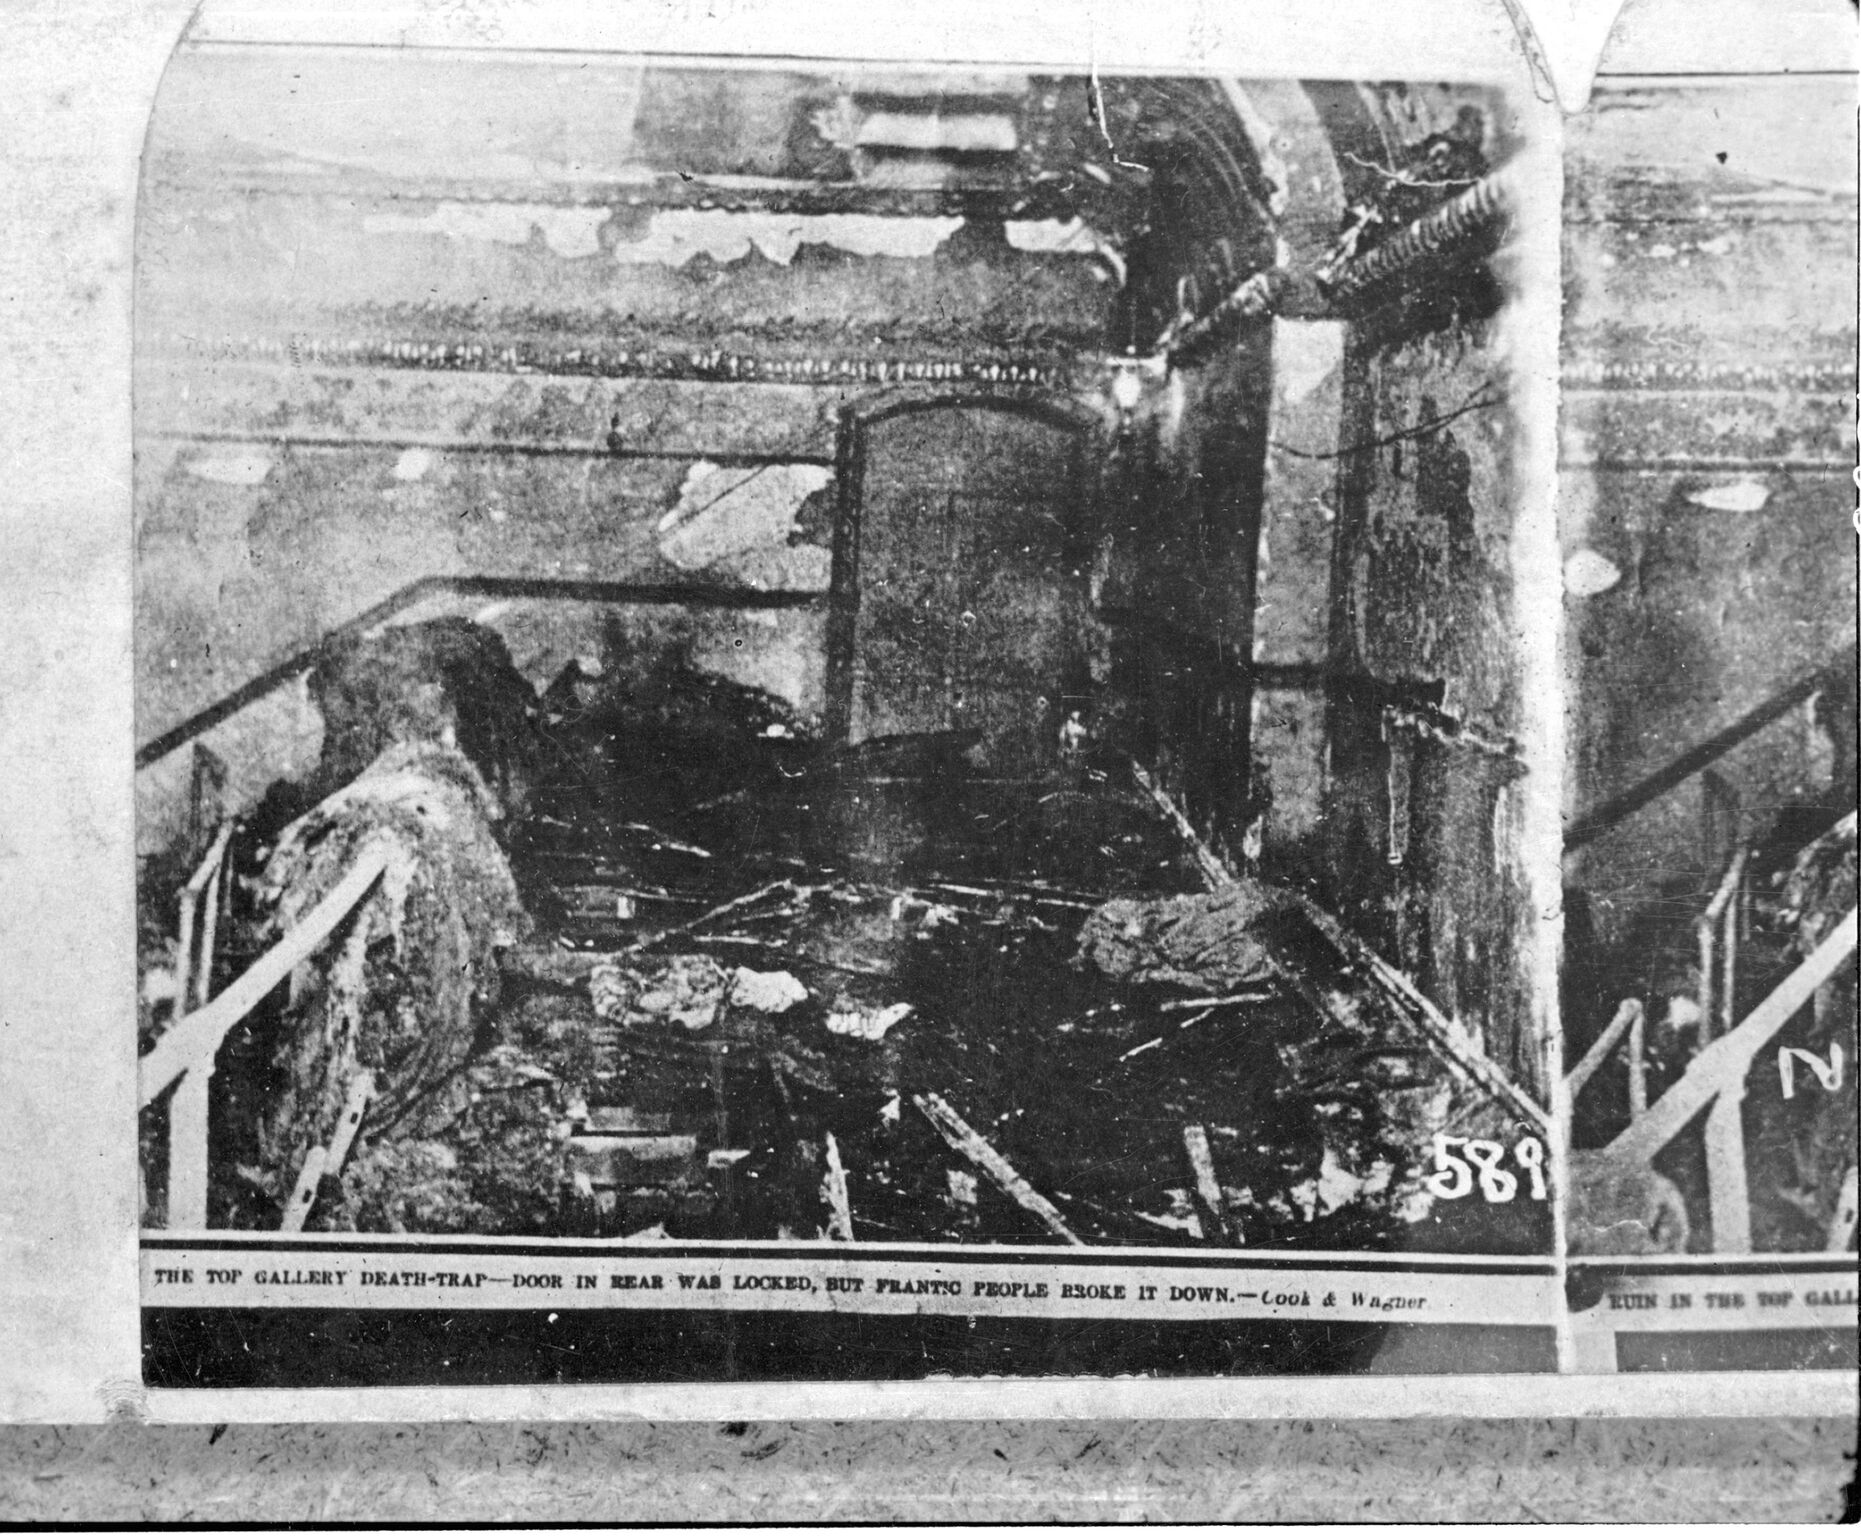 Iroquois Theatre top gallery after the fire, Chicago, Illinois, 1903